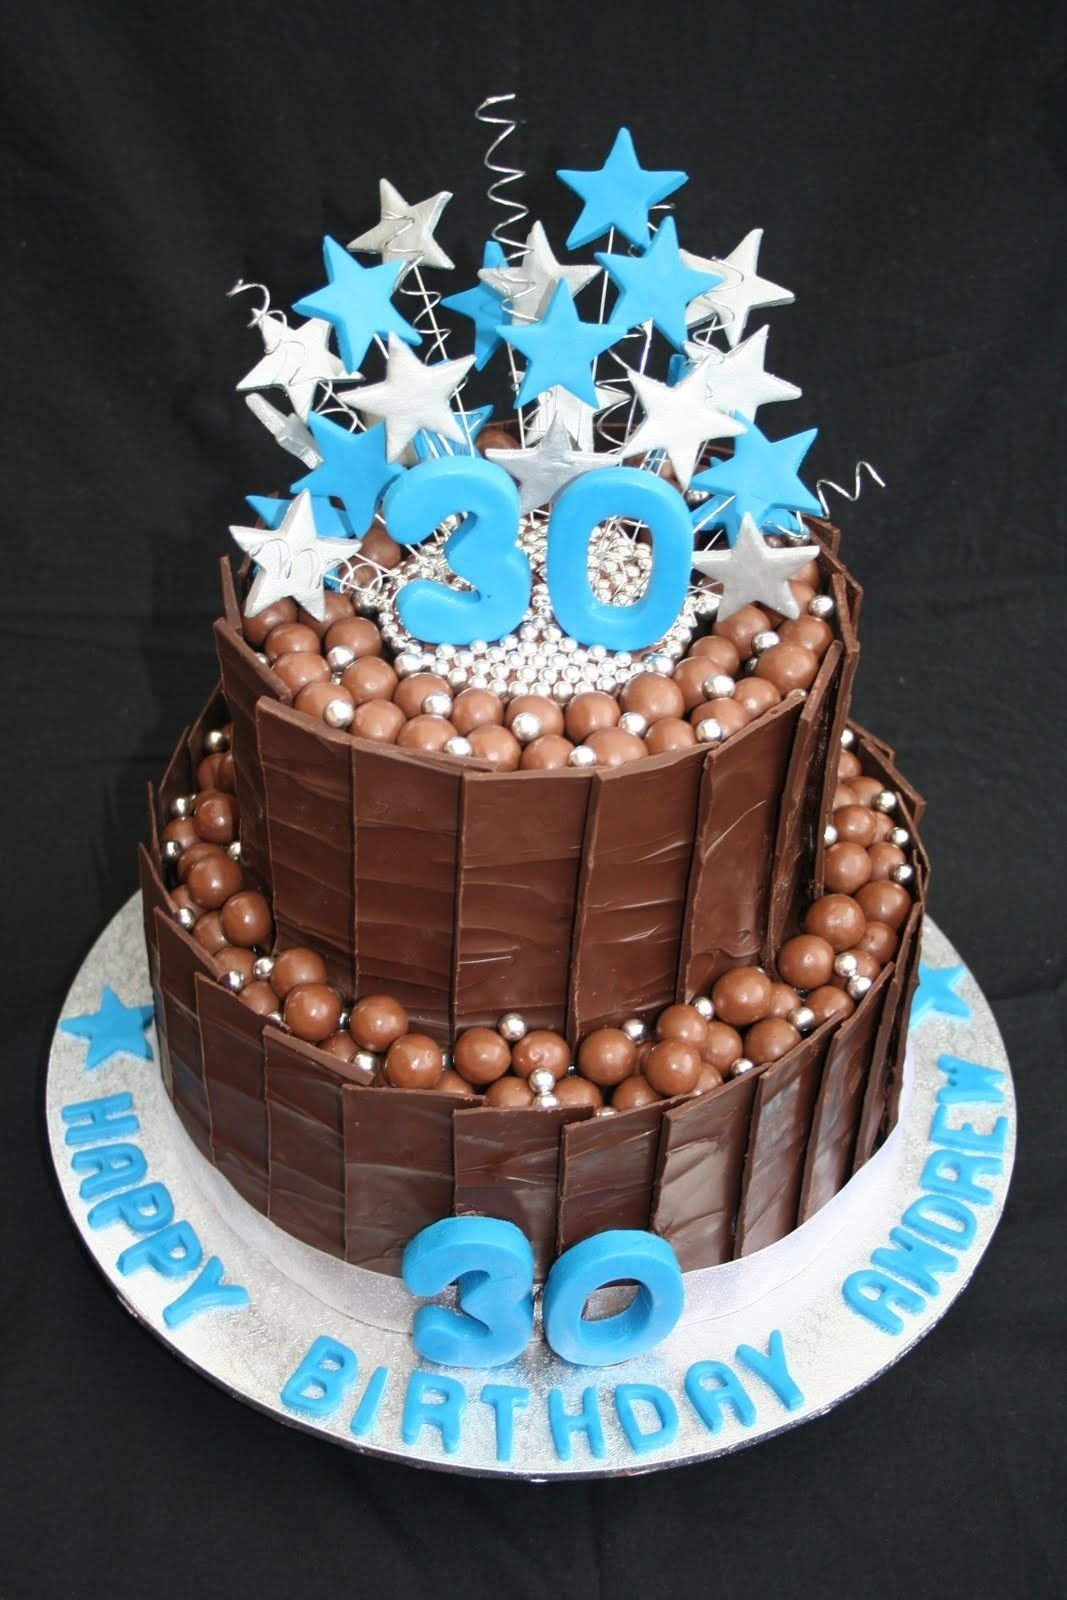 10 Gorgeous 30Th Birthday Cake Ideas For Men 30th birthday cakes leonies cakes and parties 30th 2020